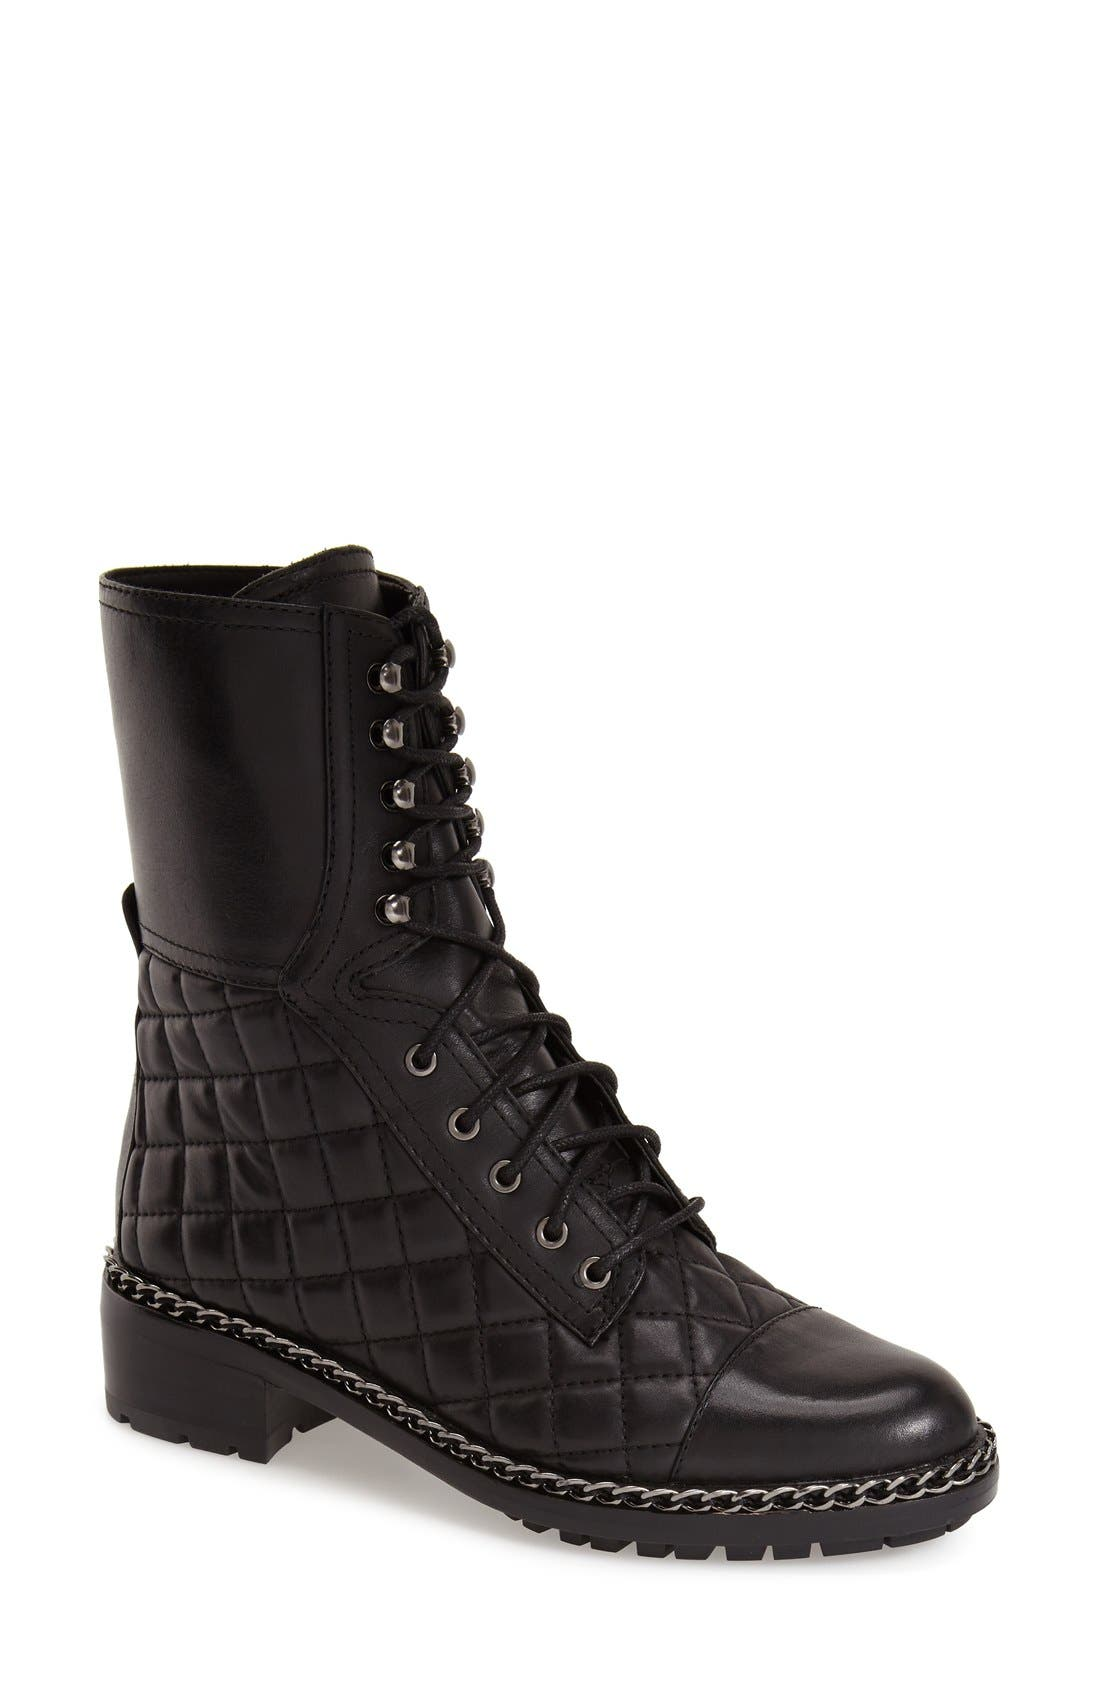 Alternate Image 1 Selected - Vince Camuto'Joanie' Boot (Women)